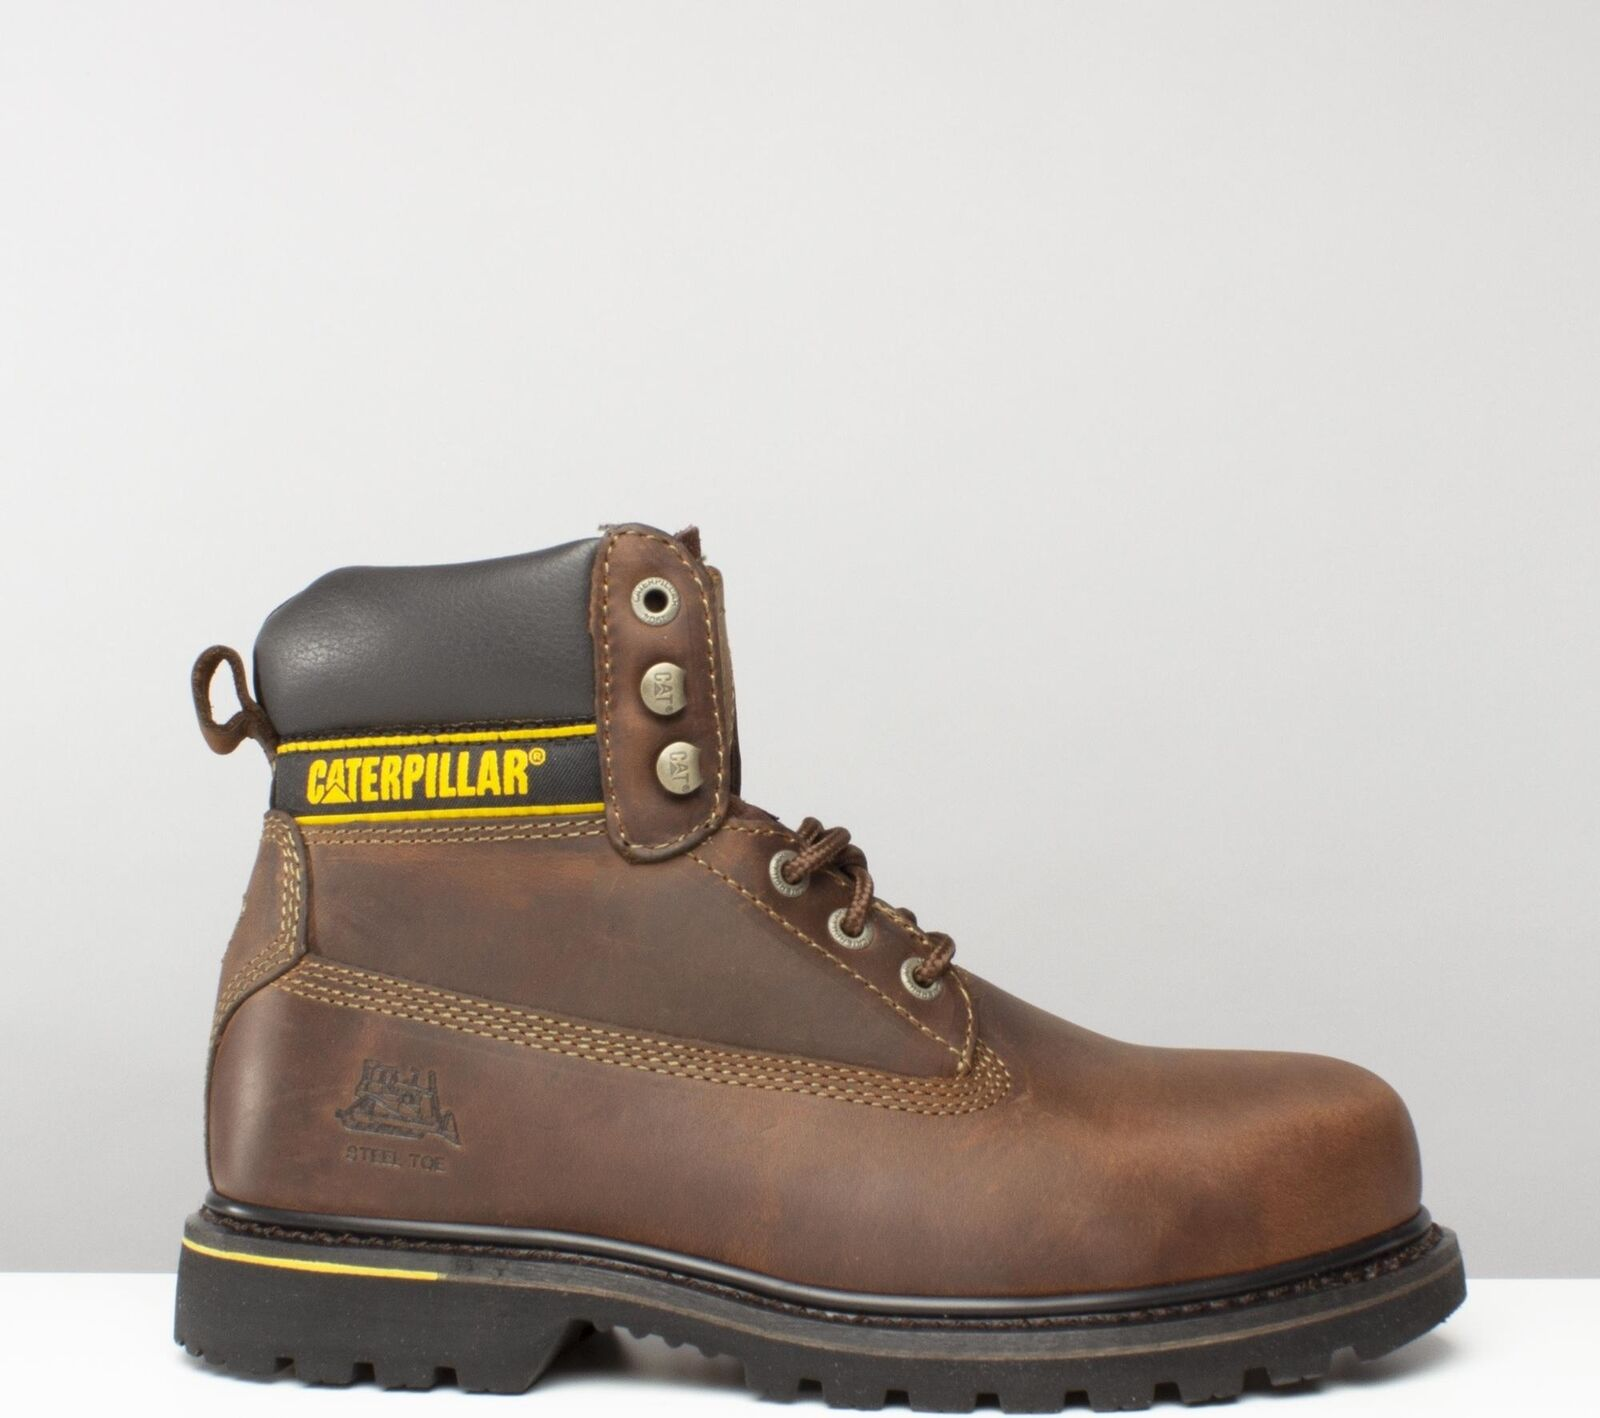 Caterpillar HOLTON Mens Oil Heat Resistant Welted Leather Safety botas marrón New